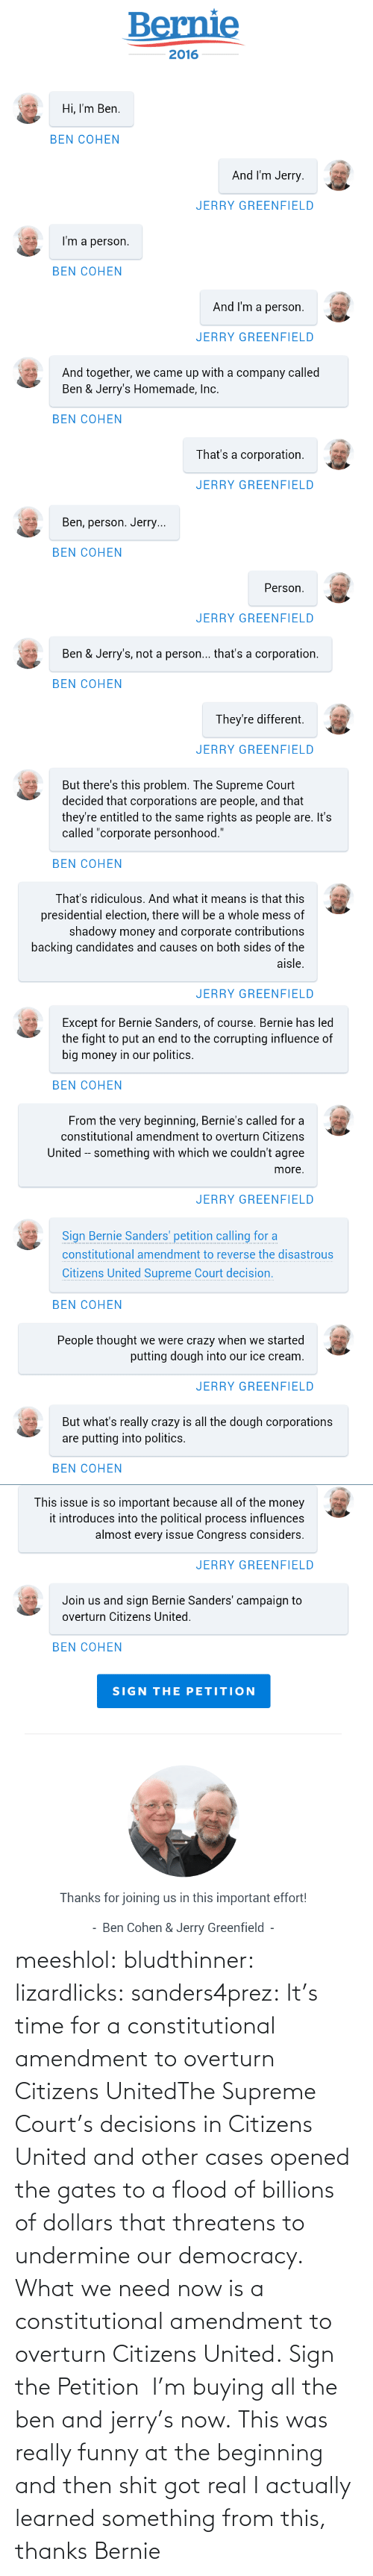 """Shadowy: Bernie  2016  Hi, I'm Ben.  BEN COHEN  And I'm Jerry.  JERRY GREENFIELD  I'm a person.  BEN COHEN  And I'm a person.  JERRY GREENFIELD  And together, we came up with a company called  Ben & Jerry's Homemade, Inc.  BEN COHEN  That's a corporation.  JERRY GREENFIELD   Ben, person. Jerry...  BEN COHEN  Person.  JERRY GREENFIELD  Ben & Jerry's, not a person... that's a corporation.  BEN COHEN  They're different.  JERRY GREENFIELD  But there's this problem. The Supreme Court  decided that corporations are people, and that  they're entitled to the same rights as people are. It's  called """"corporate personhood.""""  BEN COHEN  That's ridiculous. And what it means is that this  presidential election, there will be a whole mess of  shadowy money and corporate contributions  backing candidates and causes on both sides of the  aisle.  JERRY GREENFIELD   Except for Bernie Sanders, of course. Bernie has led  the fight to put an end to the corrupting influence of  big money in our politics.  BEN COHEN  From the very beginning, Bernie's called for a  constitutional amendment to overturn Citizens  United -- something with which we couldn't agree  more.  JERRY GREENFIELD  Sign Bernie Sanders' petition calling for a  constitutional amendment to reverse the disastrous  Citizens United Supreme Court decision.  BEN COHEN  People thought we were crazy when we started  putting dough into our ice cream.  JERRY GREENFIELD  But what's really crazy is all the dough corporations  are putting into politics.  BEN COHEN   This issue is so important because all of the money  it introduces into the political process influences  almost every issue Congress considers.  JERRY GREENFIELD  Join us and sign Bernie Sanders' campaign to  overturn Citizens United.  BEN COHEN  SIGN THE PETITION  Thanks for joining us in this important effort!  Ben Cohen & Jerry Greenfield - meeshlol:  bludthinner:  lizardlicks:  sanders4prez:  It's time for a constitutional amendment to overturn Citizens UnitedThe Supre"""